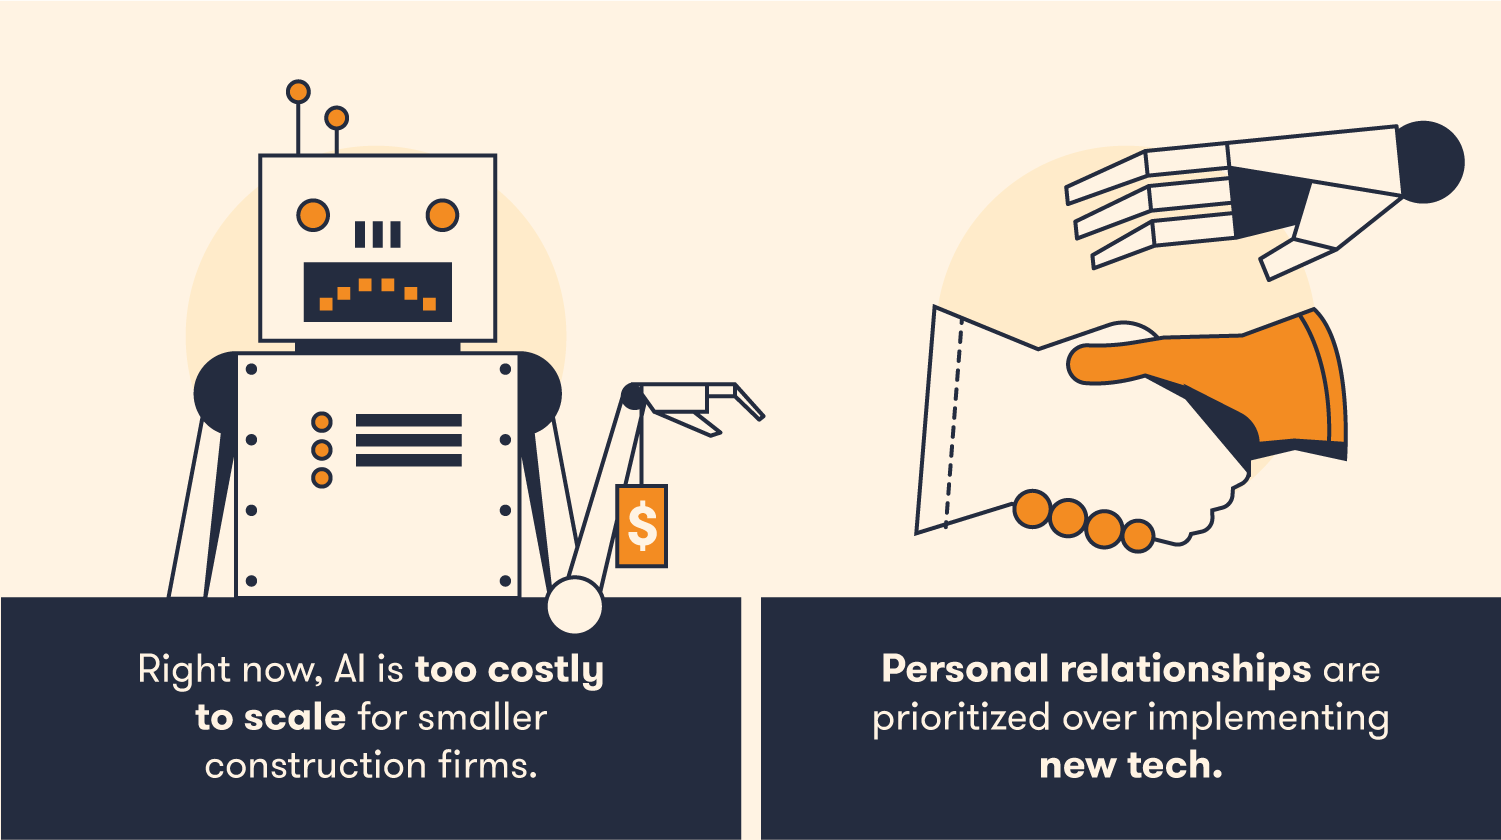 AI is too new and too costly for widespread use right now.